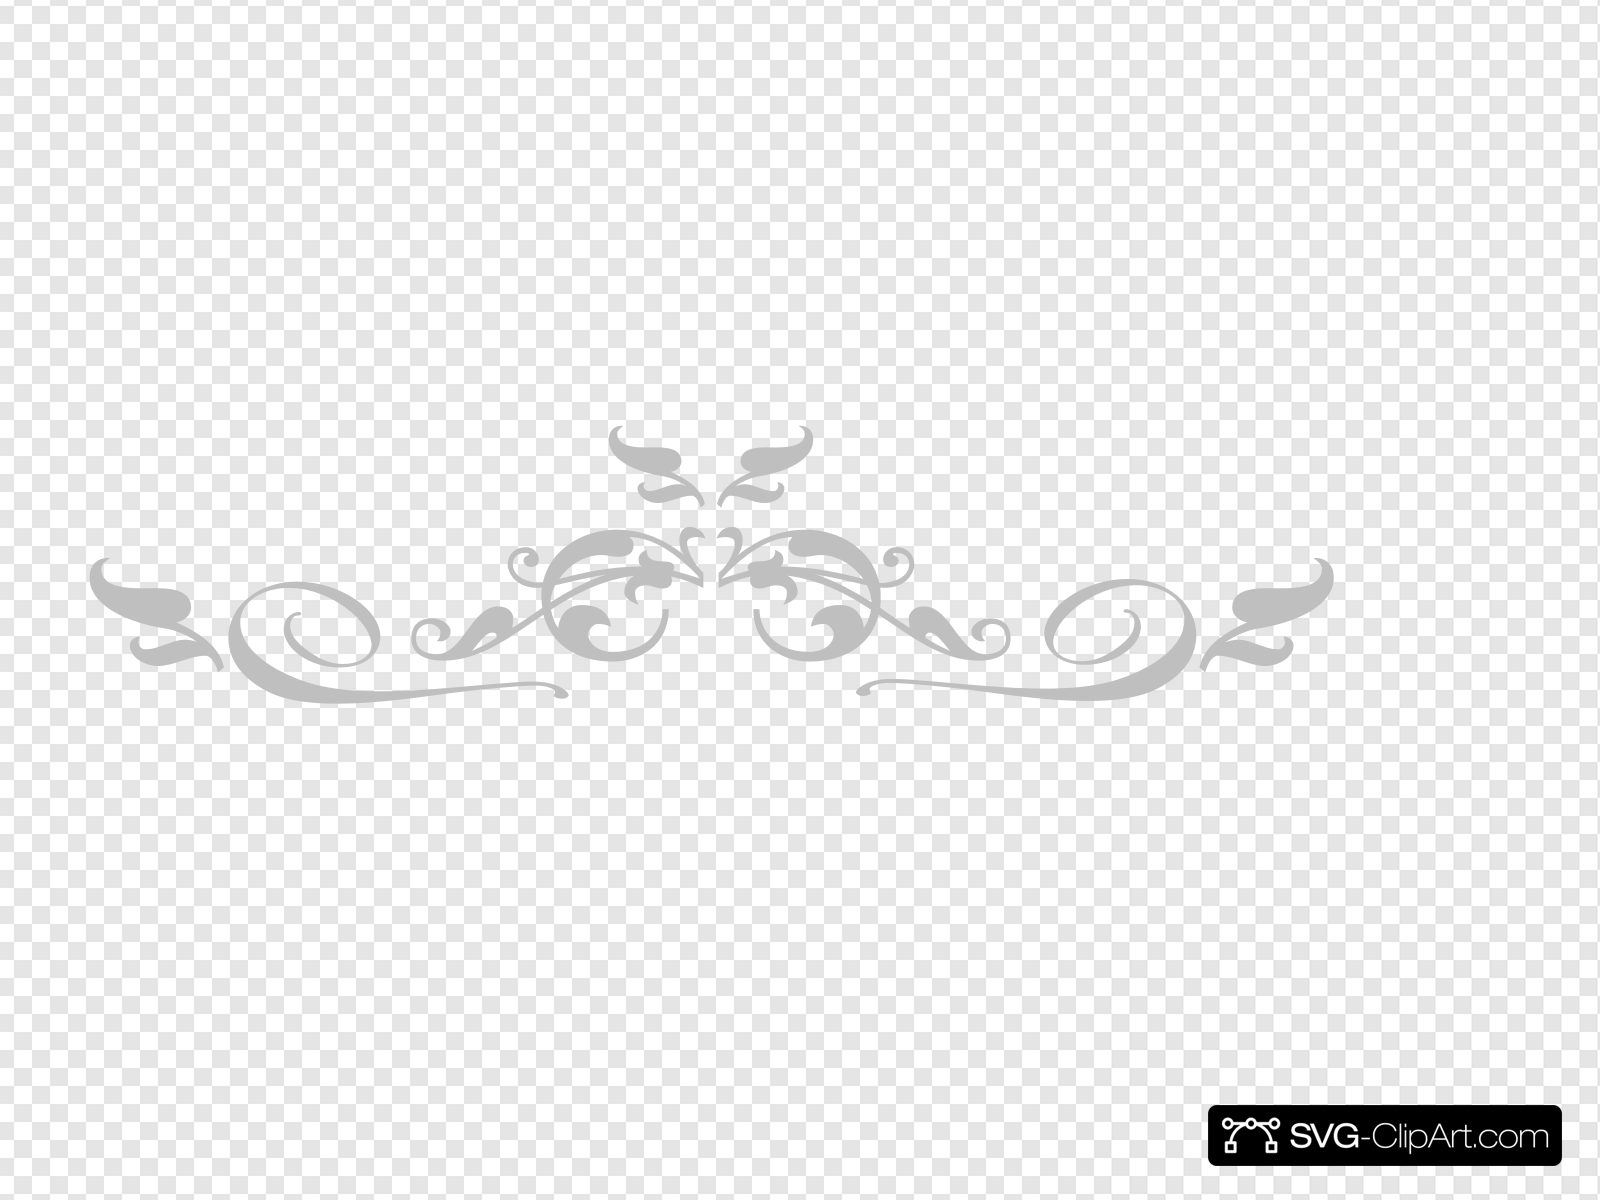 Clipart embelishment banner Grey Embellishment Clip art, Icon and SVG - SVG Clipart banner